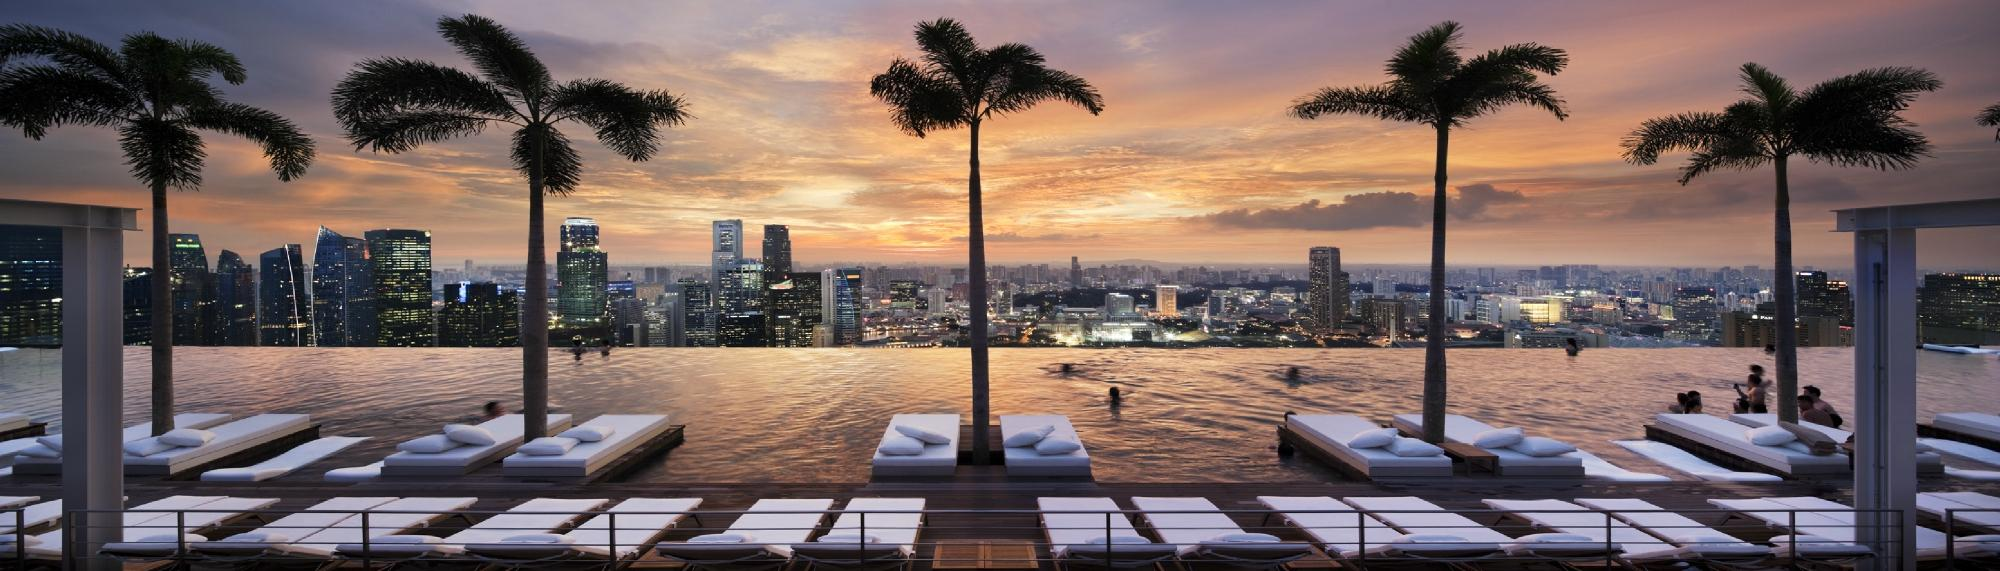 Pool inspiration the marina bay sands pools by design for Marina bay sands architecture concept